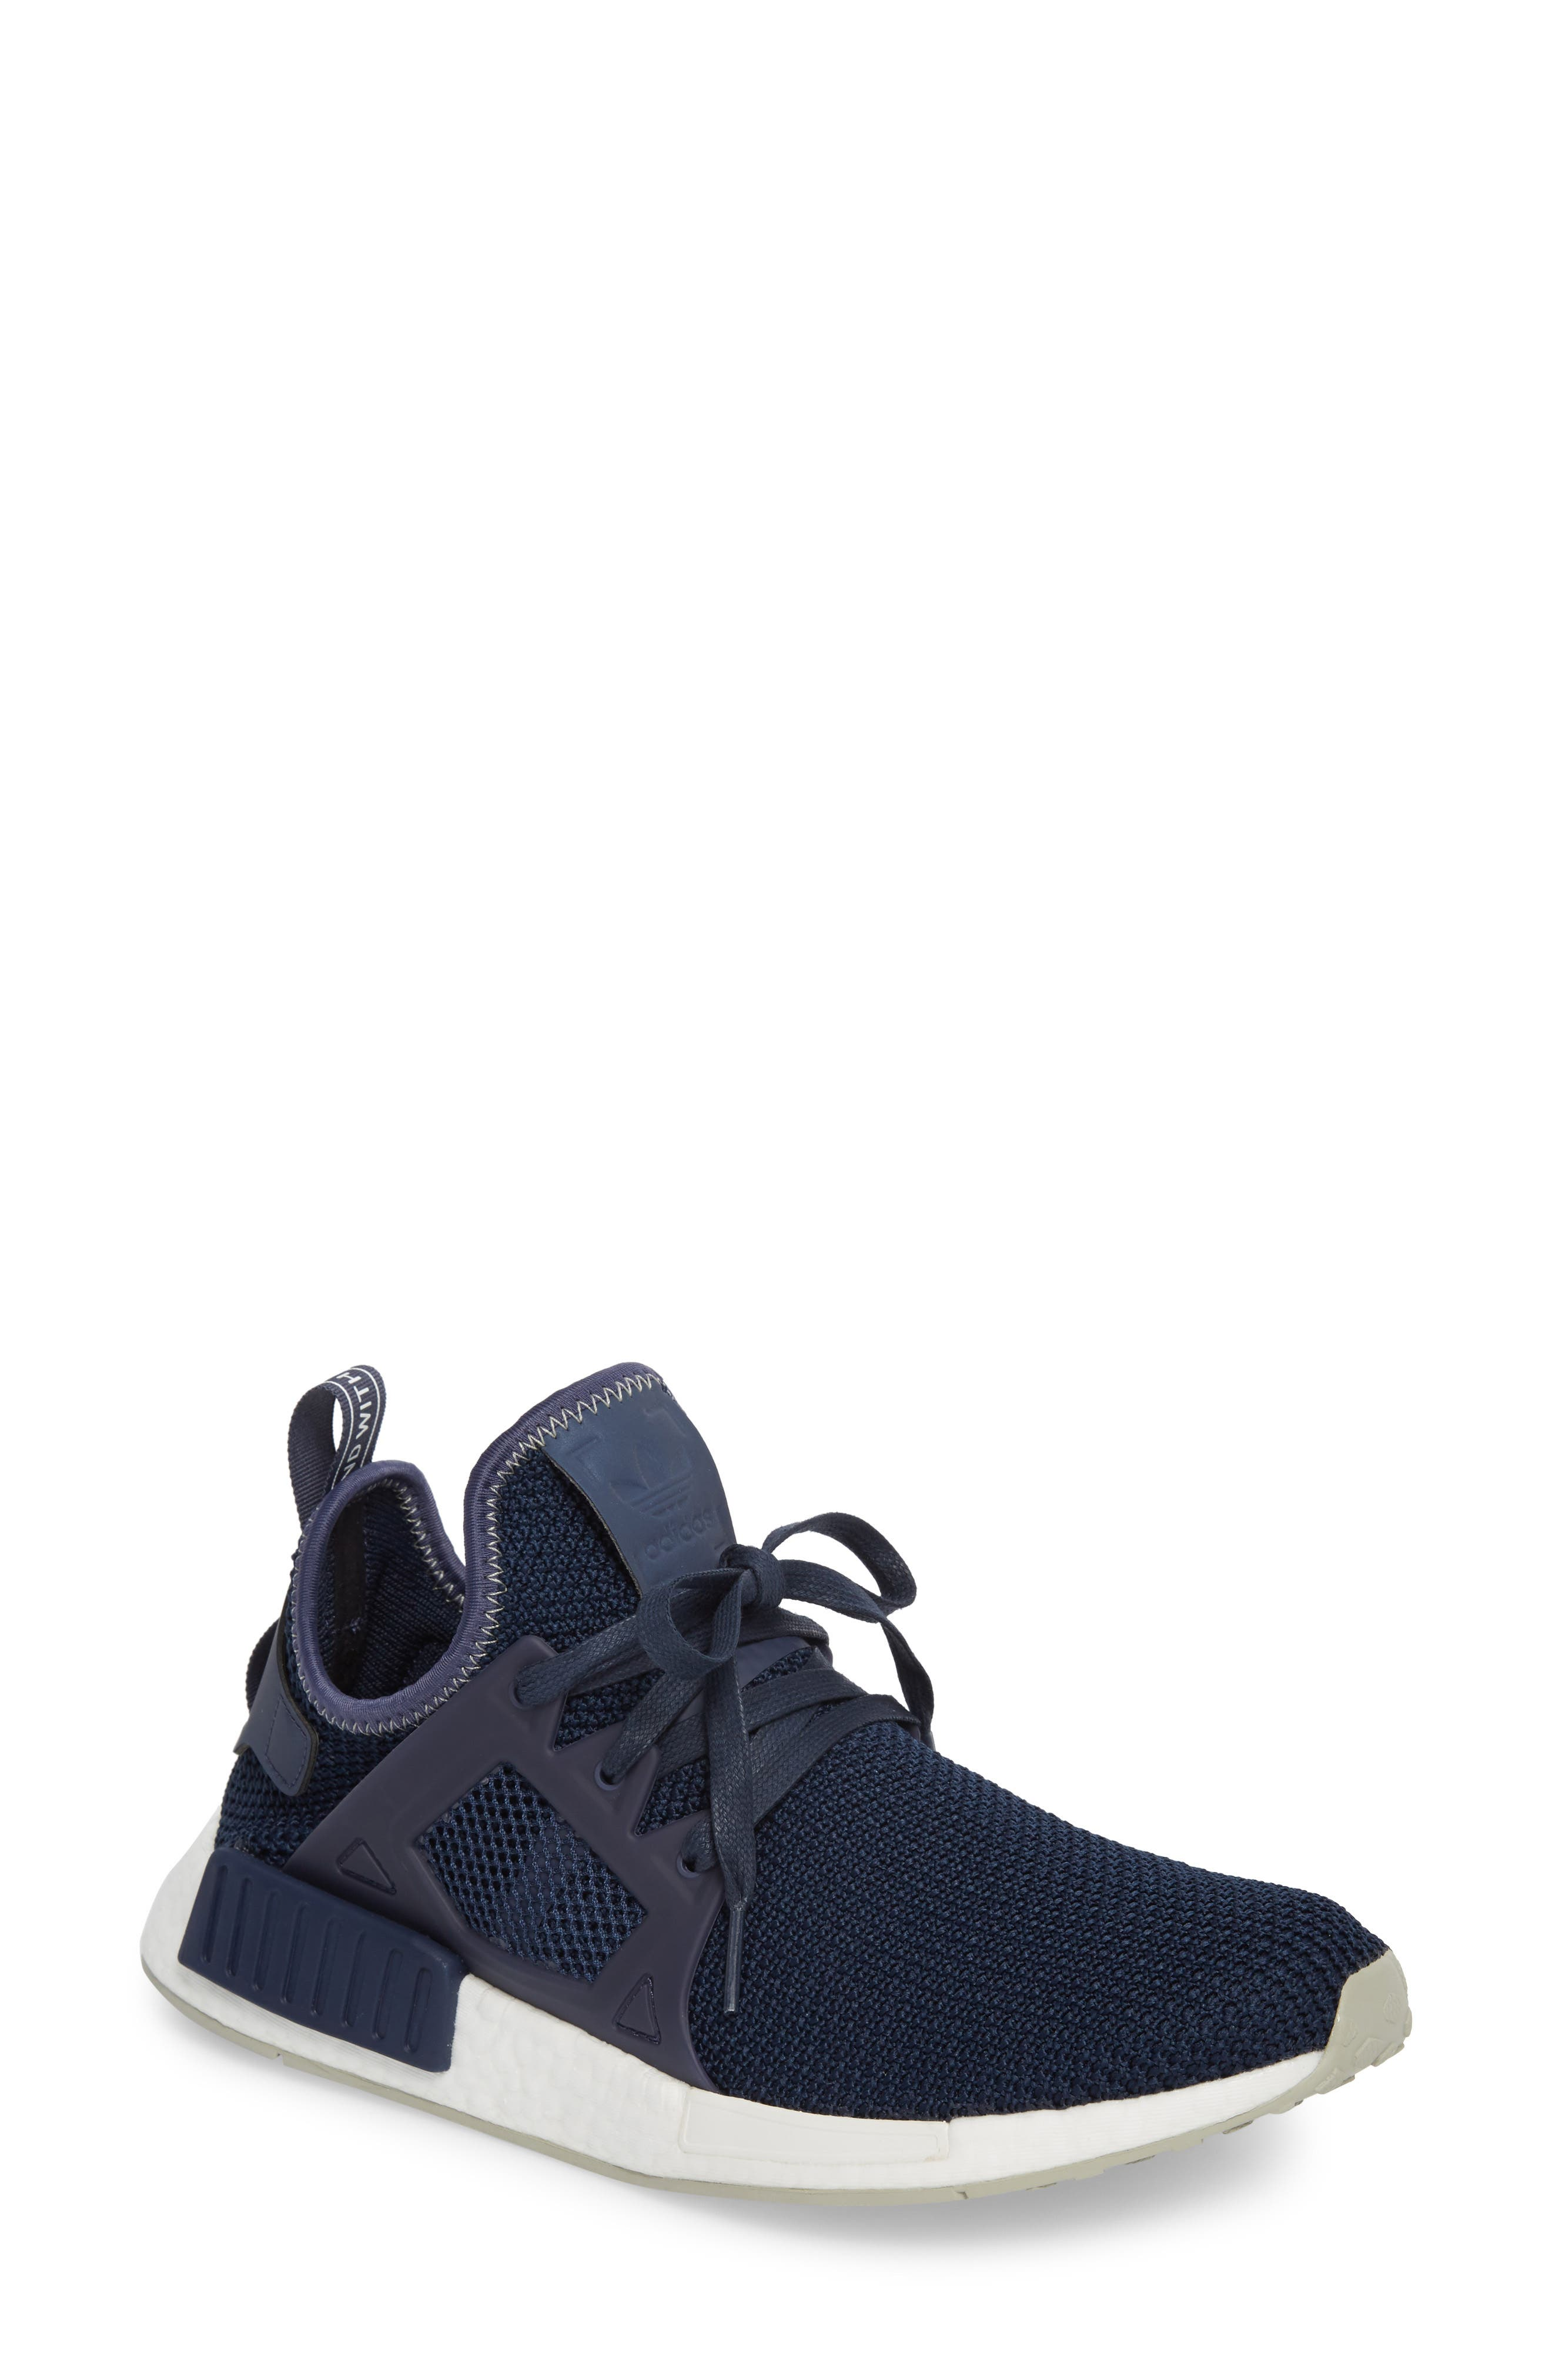 Alternate Image 1 Selected - adidas NMD XR1 Athletic Shoe (Women)